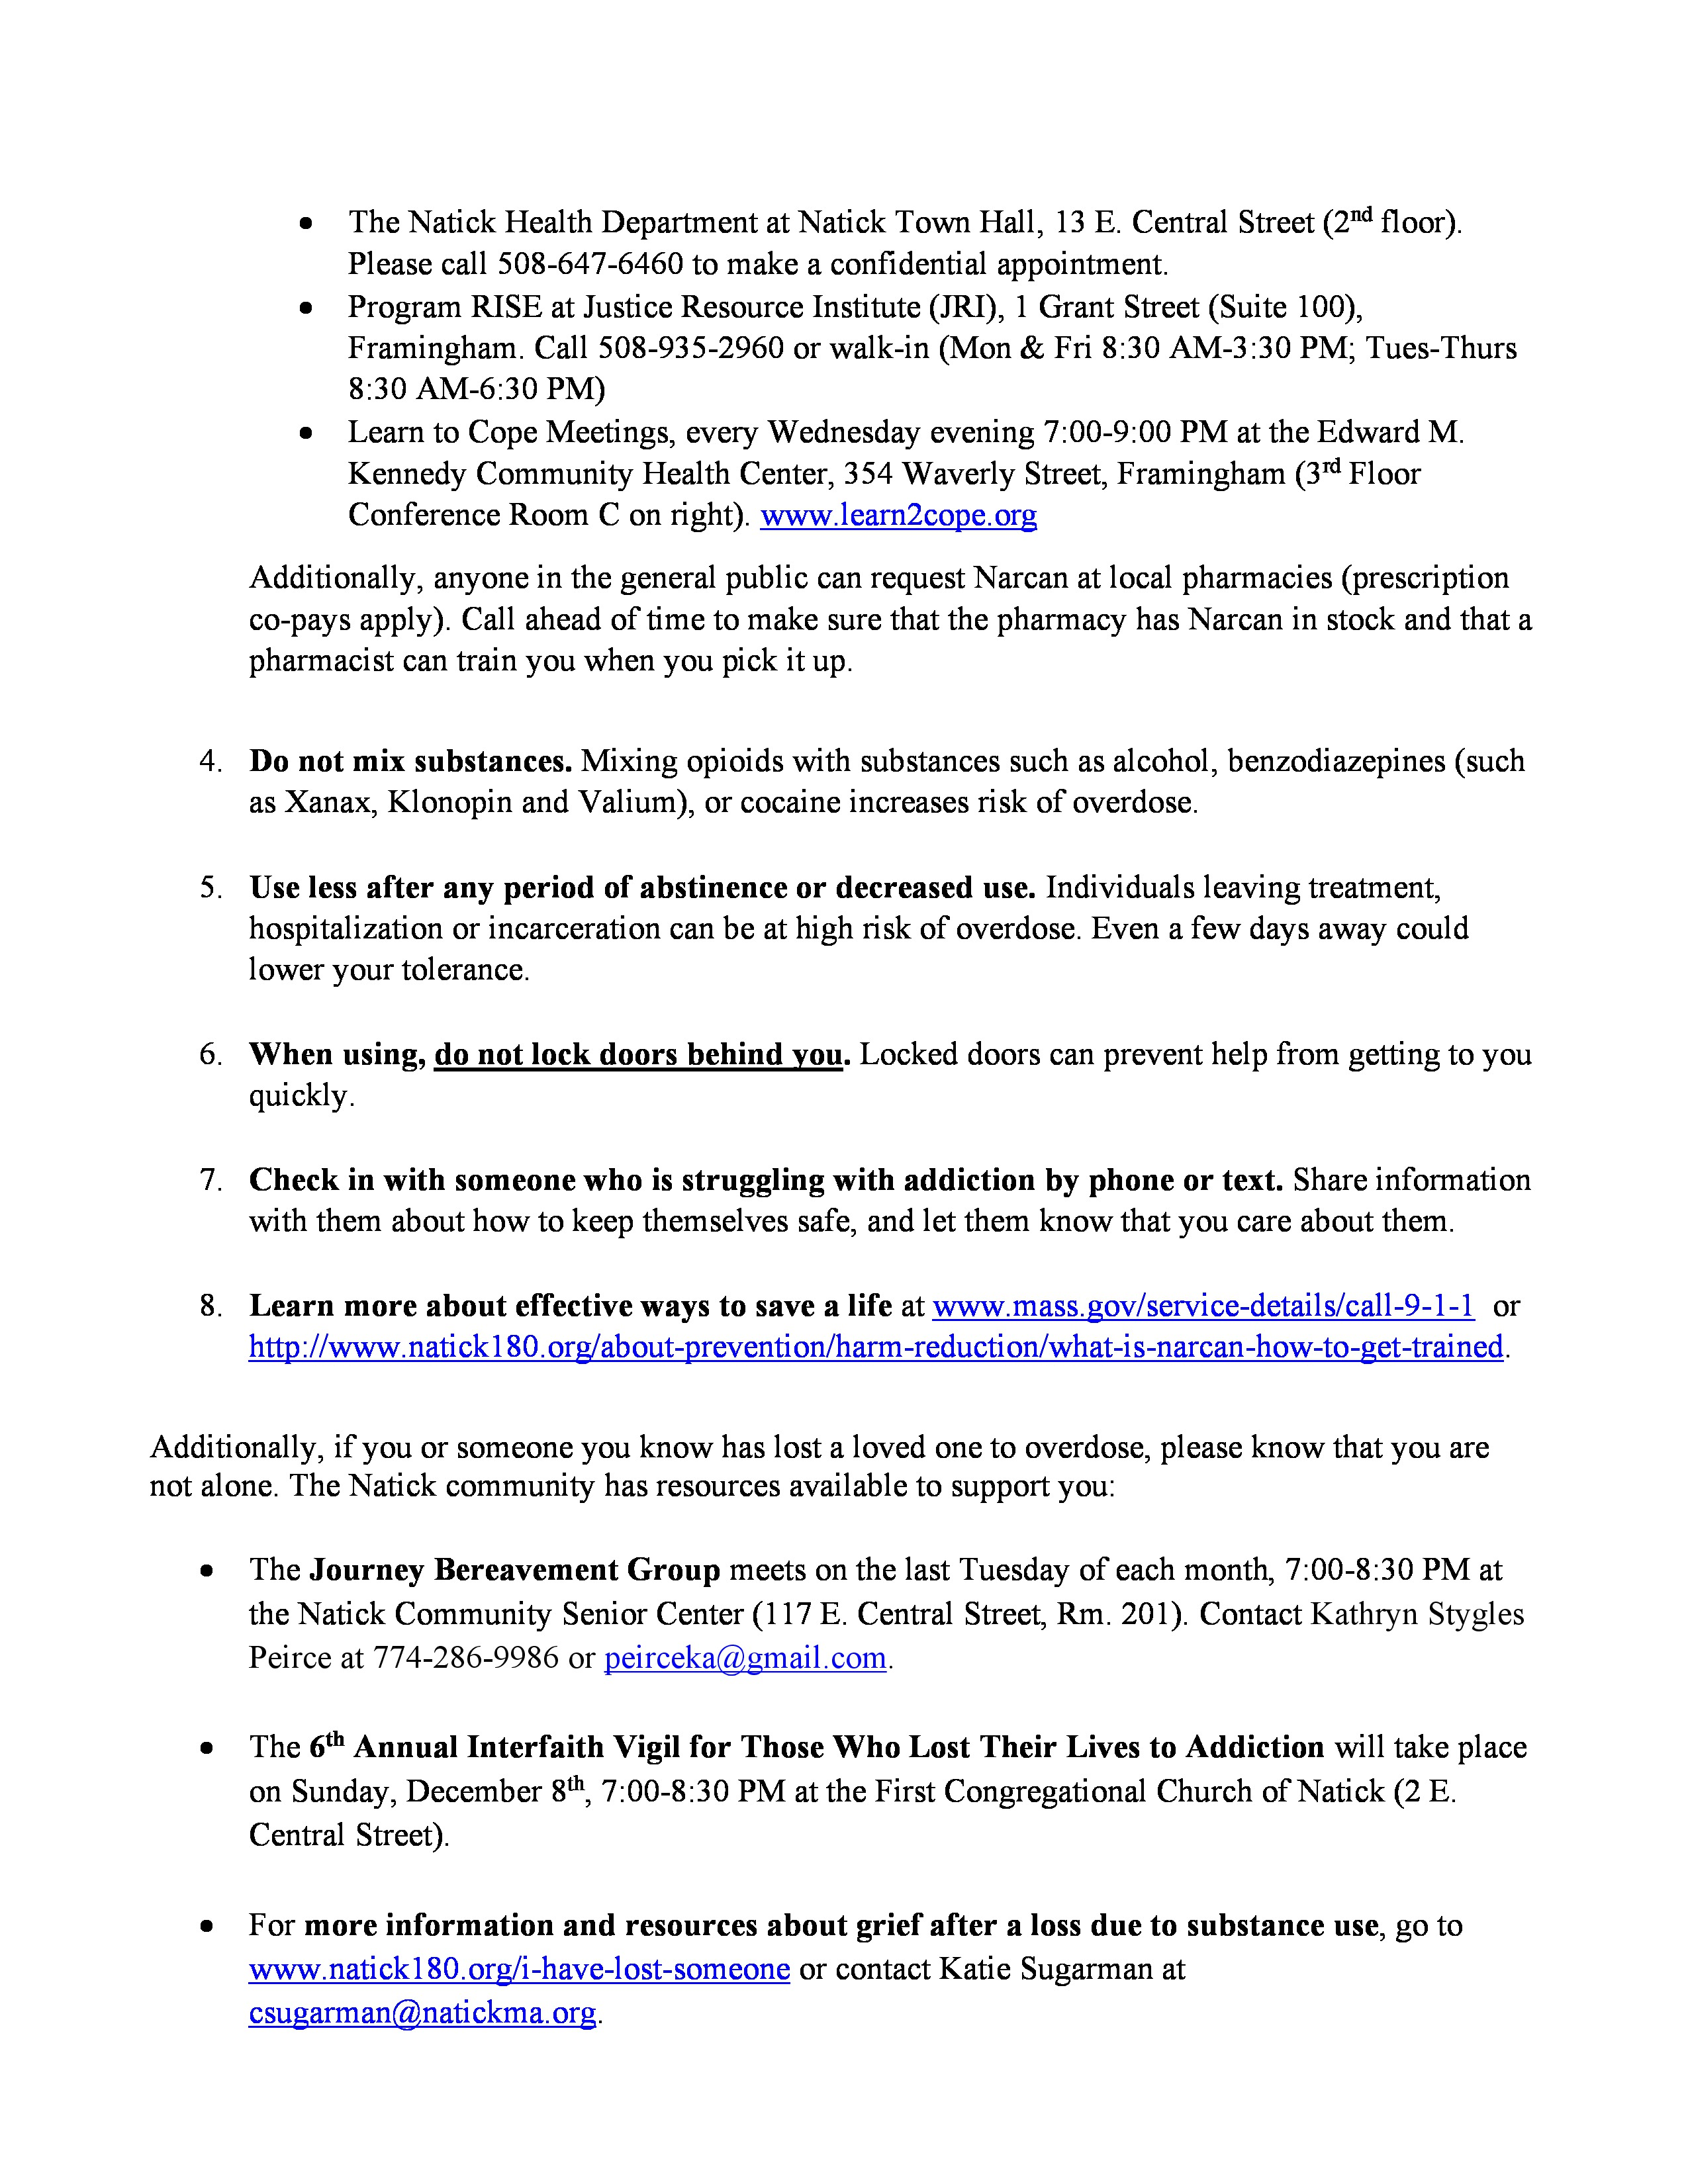 Natick 180 Save a Life Press Release_Nov 2019-p2